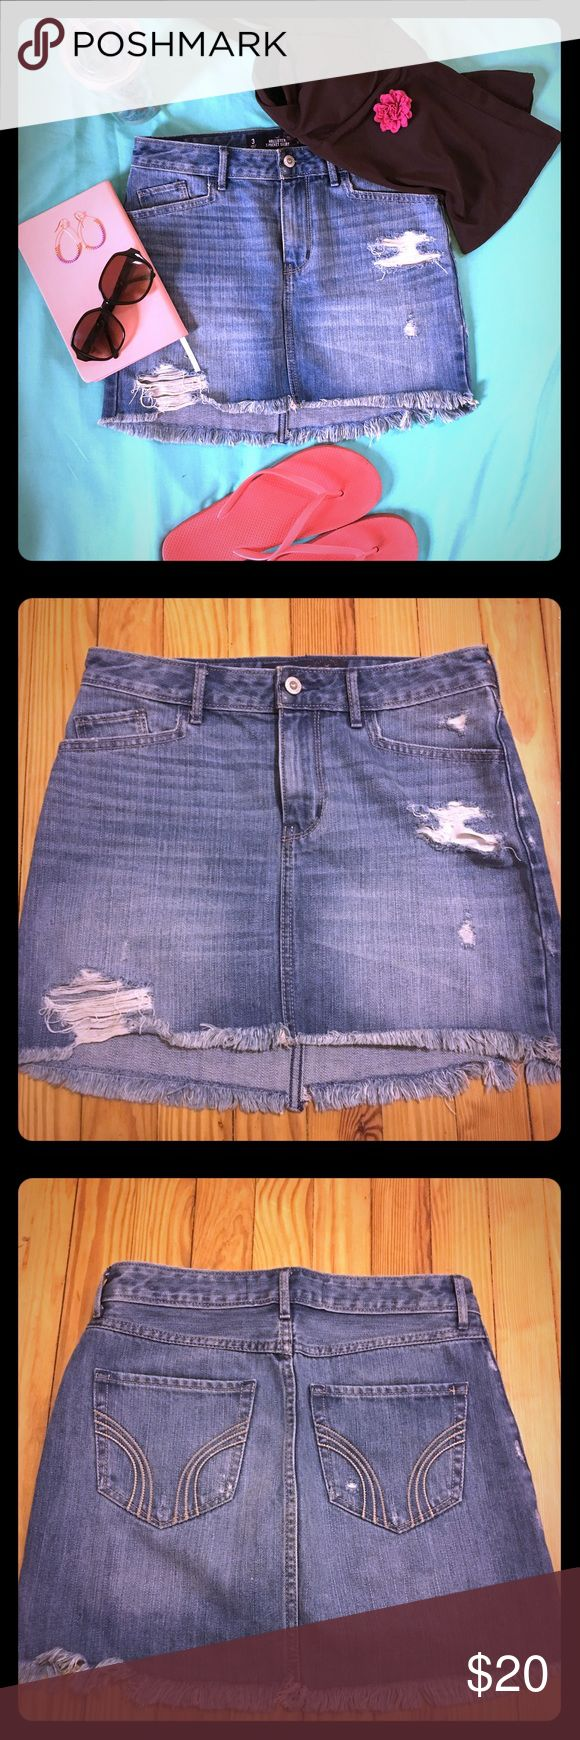 Hollister Distressed Jean Skirt Size 26☀️🏖 This Hollister Distressed Jean Skirt Size 26 is like new. Its super cool and perfect for a beach day ☀️🌊⛱🏝 Hollister Skirts